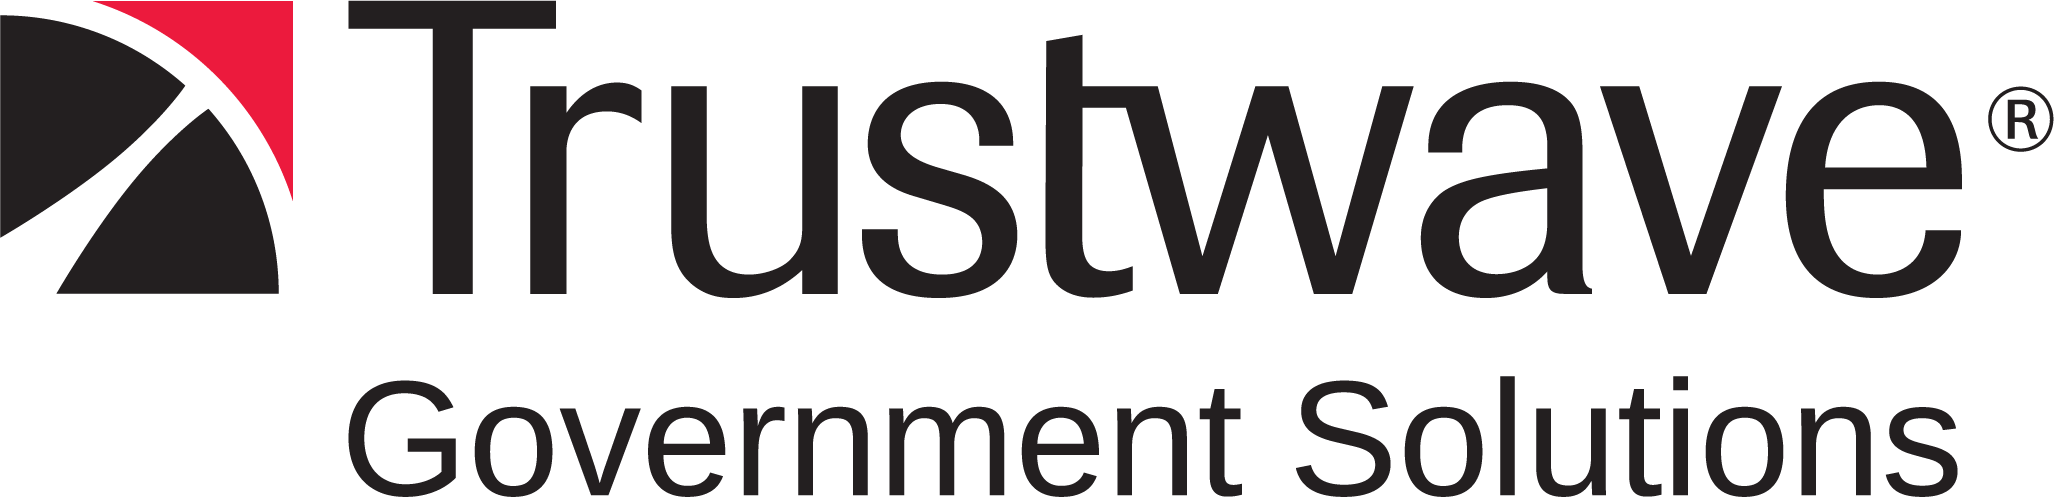 Trustwave-Government-Solutions.png